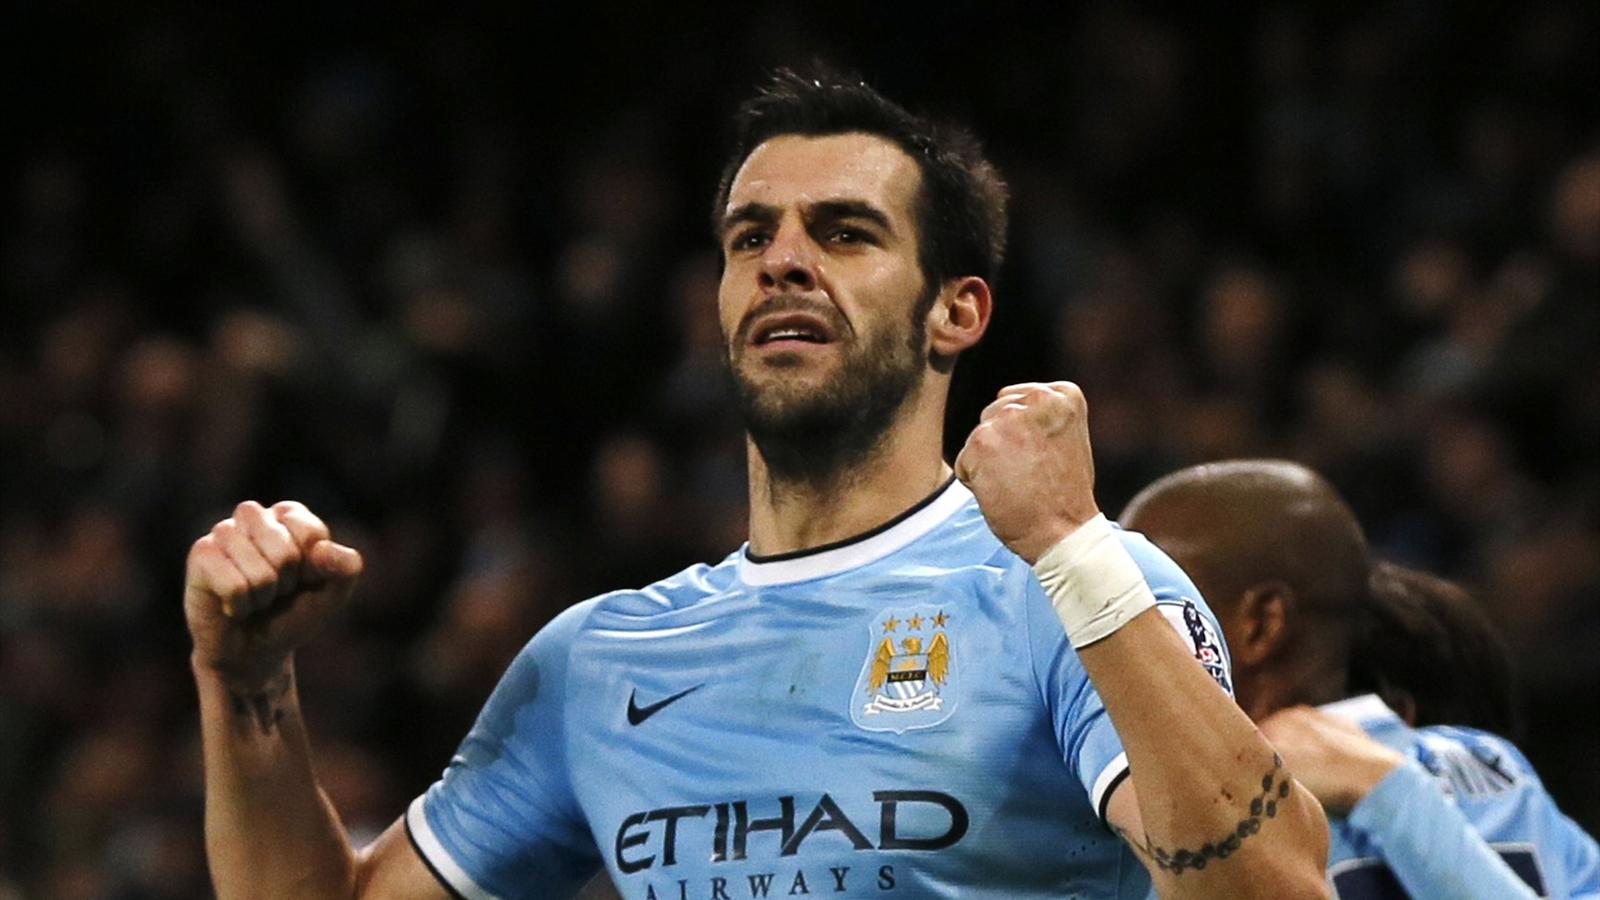 Manchester City's Alvaro Negredo celebrates after scoring a goal against Liverpool during their English Premier League match at the Etihad, December 26, 2013 (Reuters)